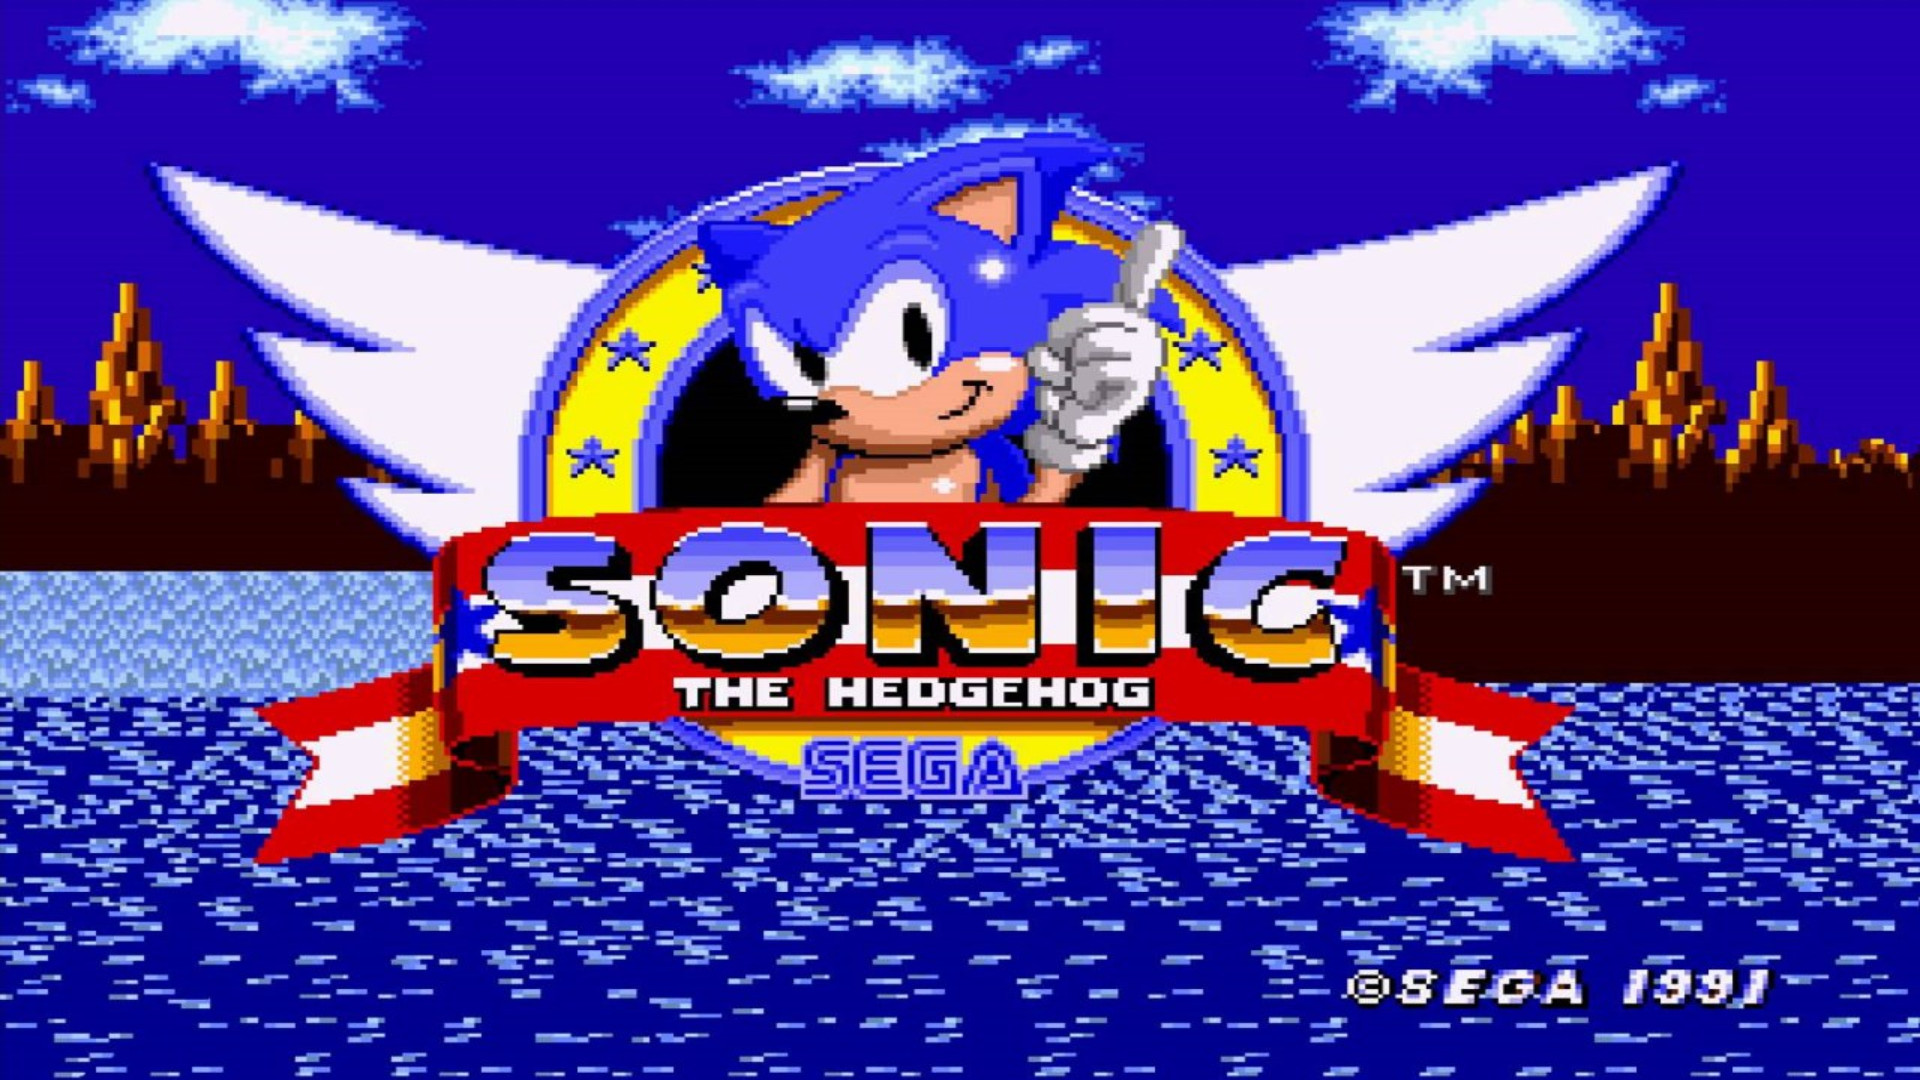 Sonic video game music